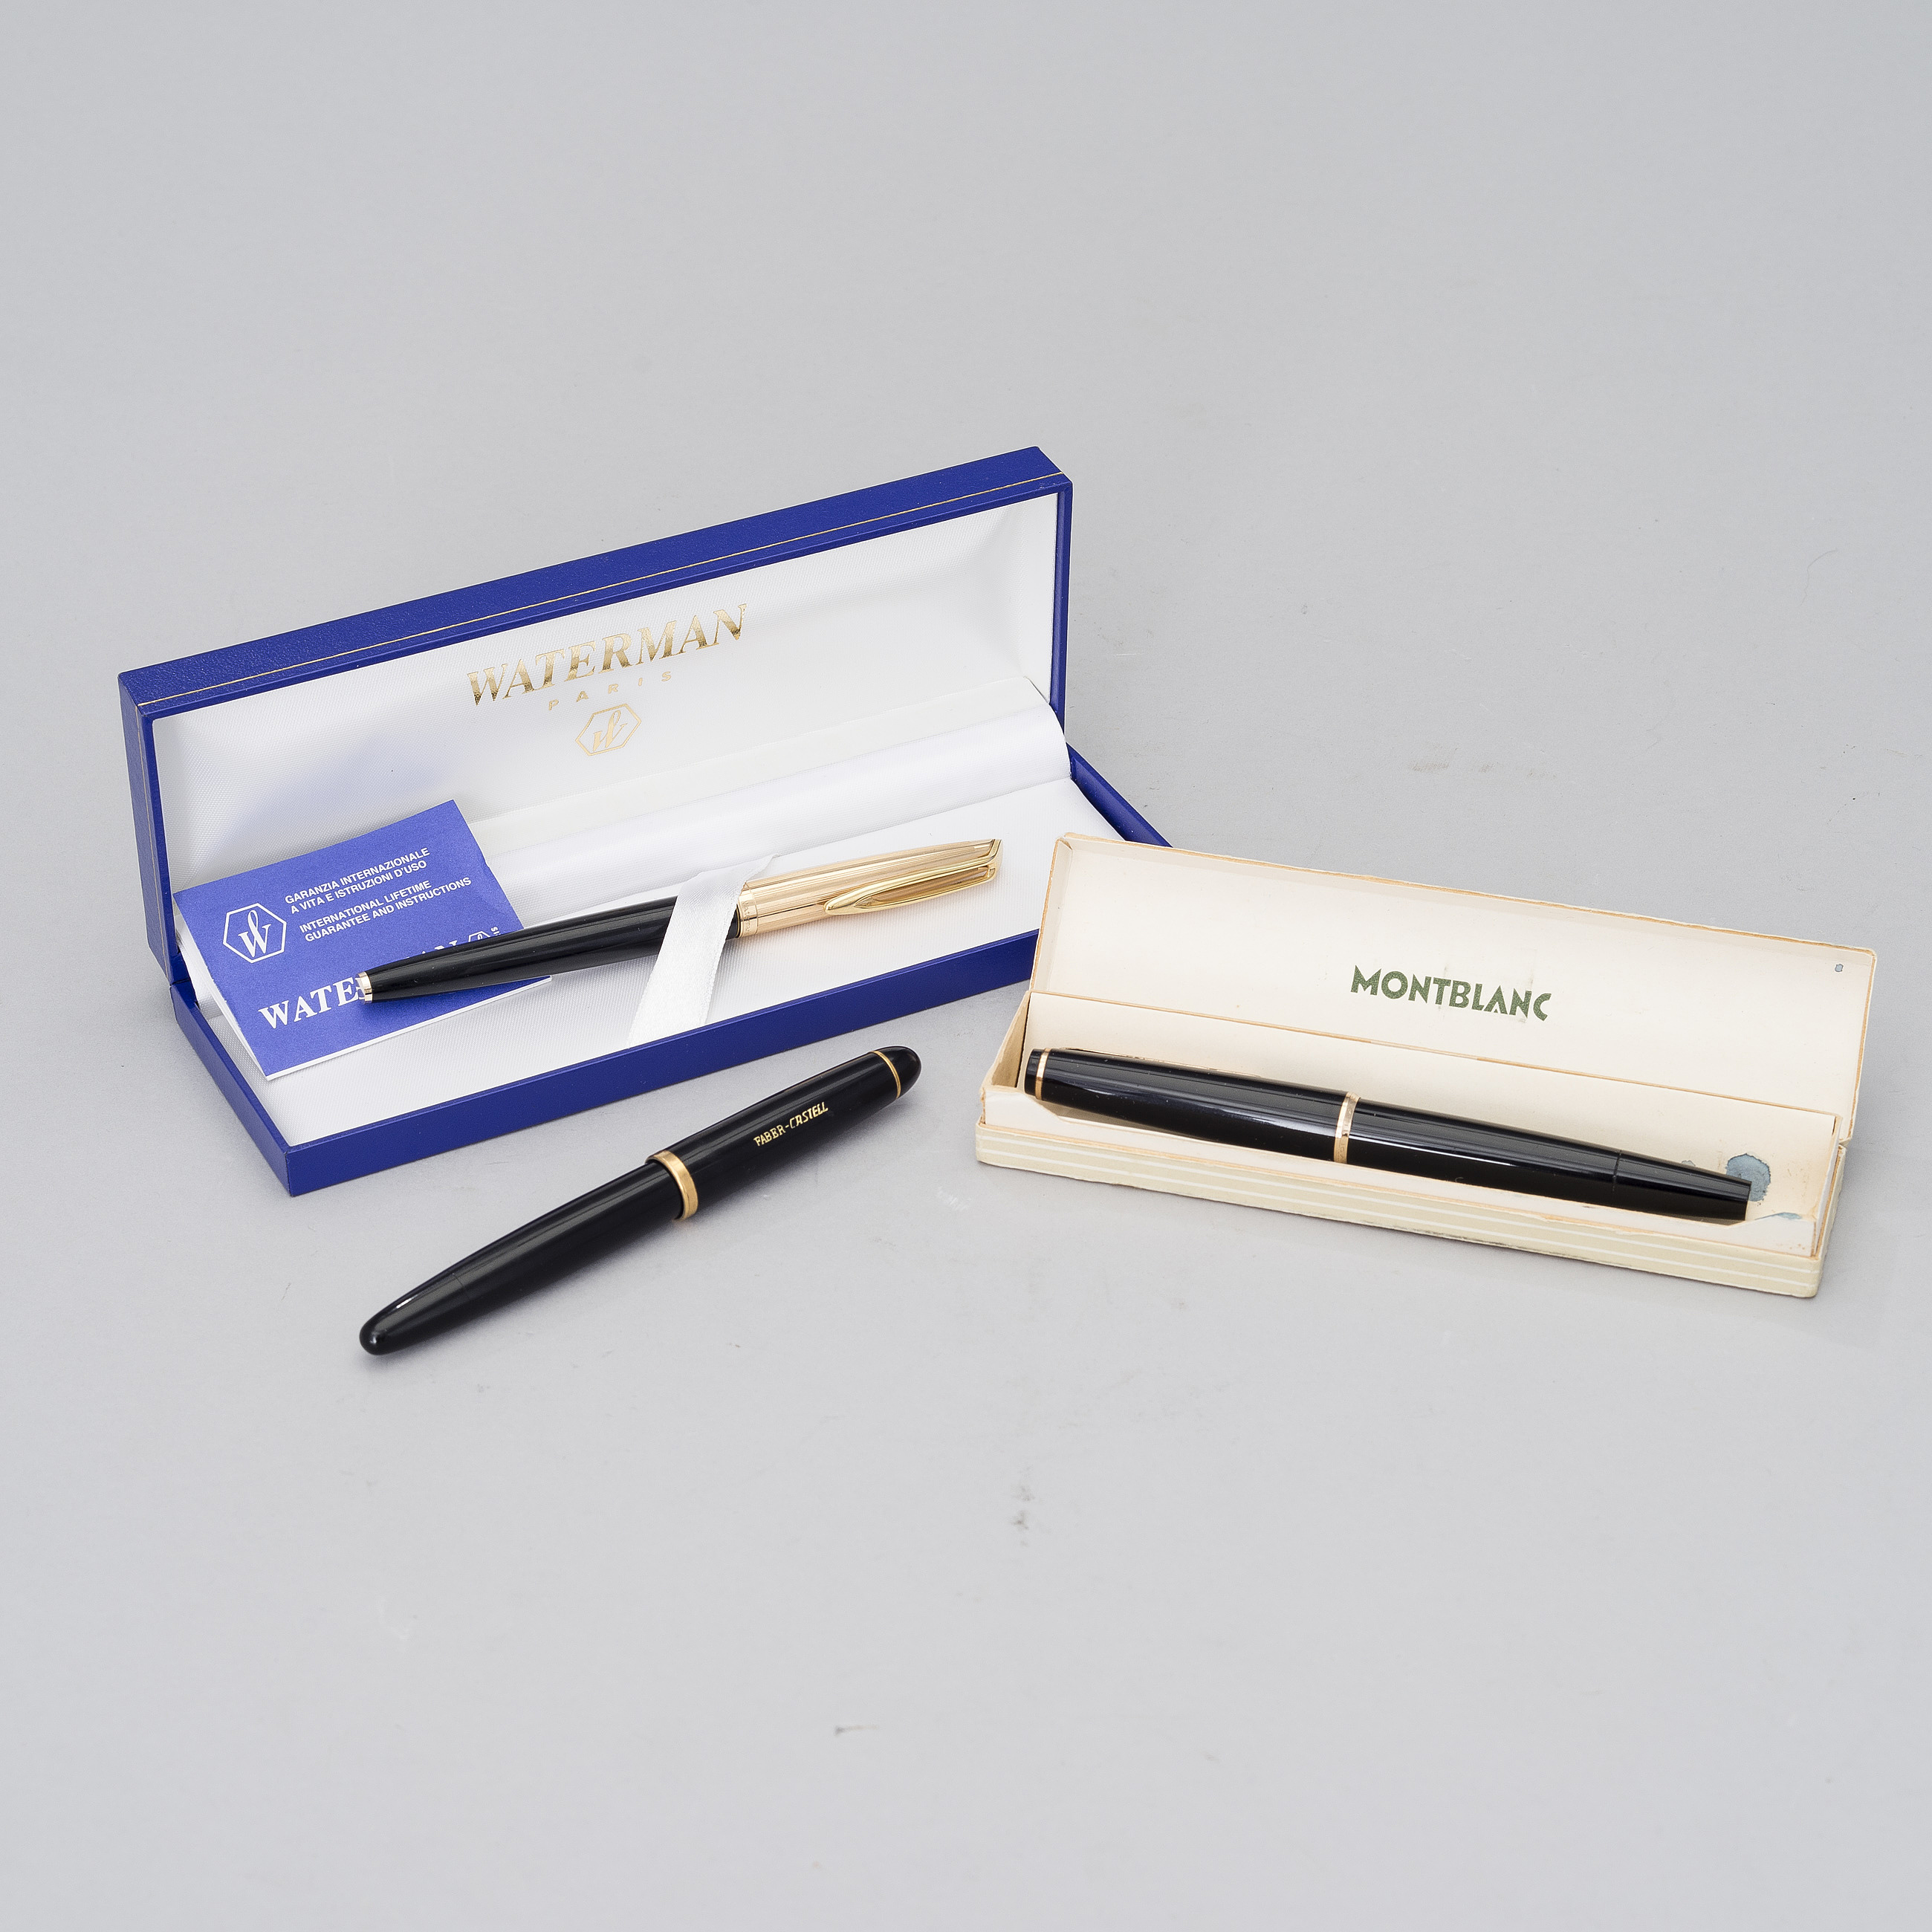 FOUNTAIN PENS, 3 pcs, Mont Blanc, Faber-Castell and Waterman